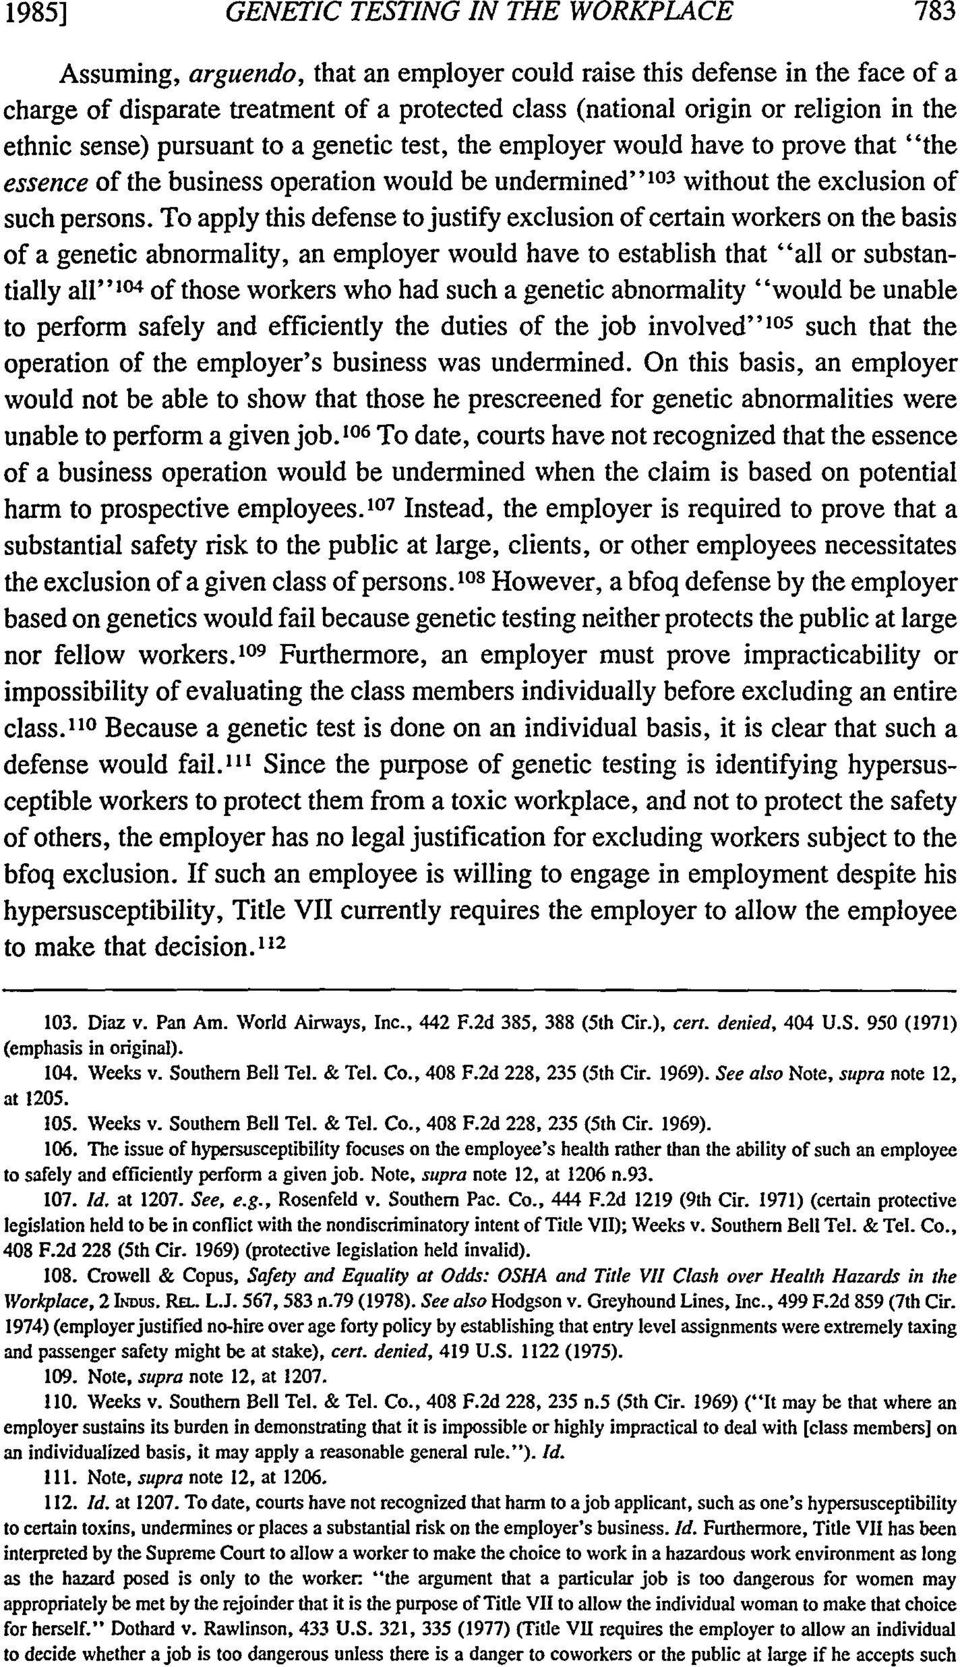 "To apply this defense to justify exclusion of certain workers on the basis of a genetic abnormality, an employer would have to establish that ""all or substantially all""0 4 of those workers who had"